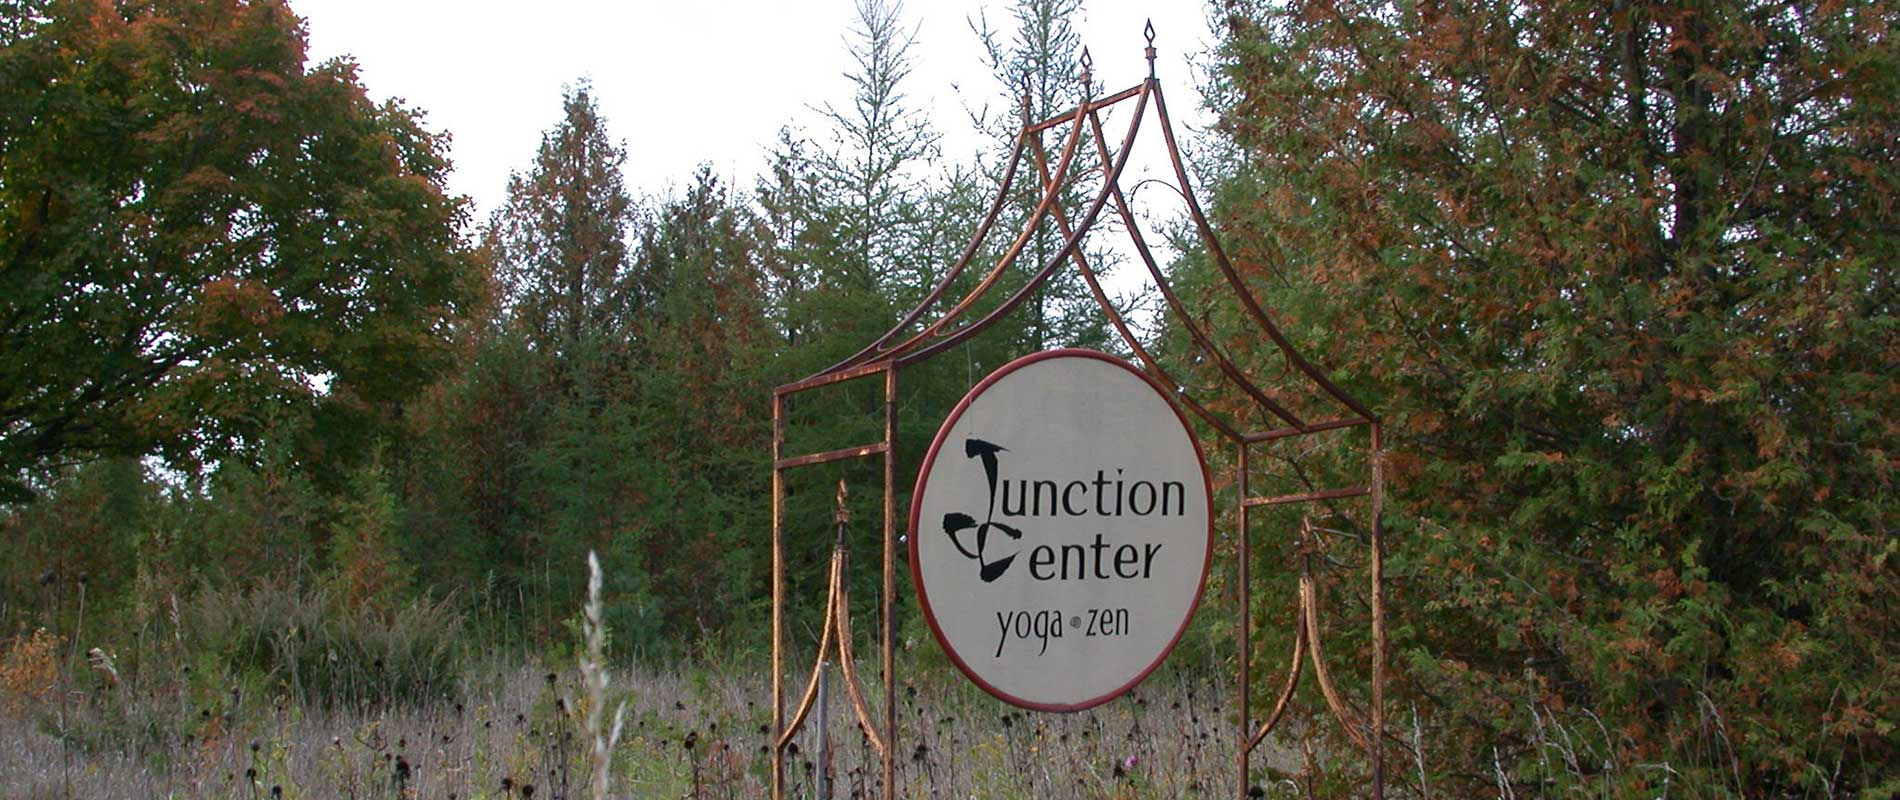 Junction Center Yoga & Zen